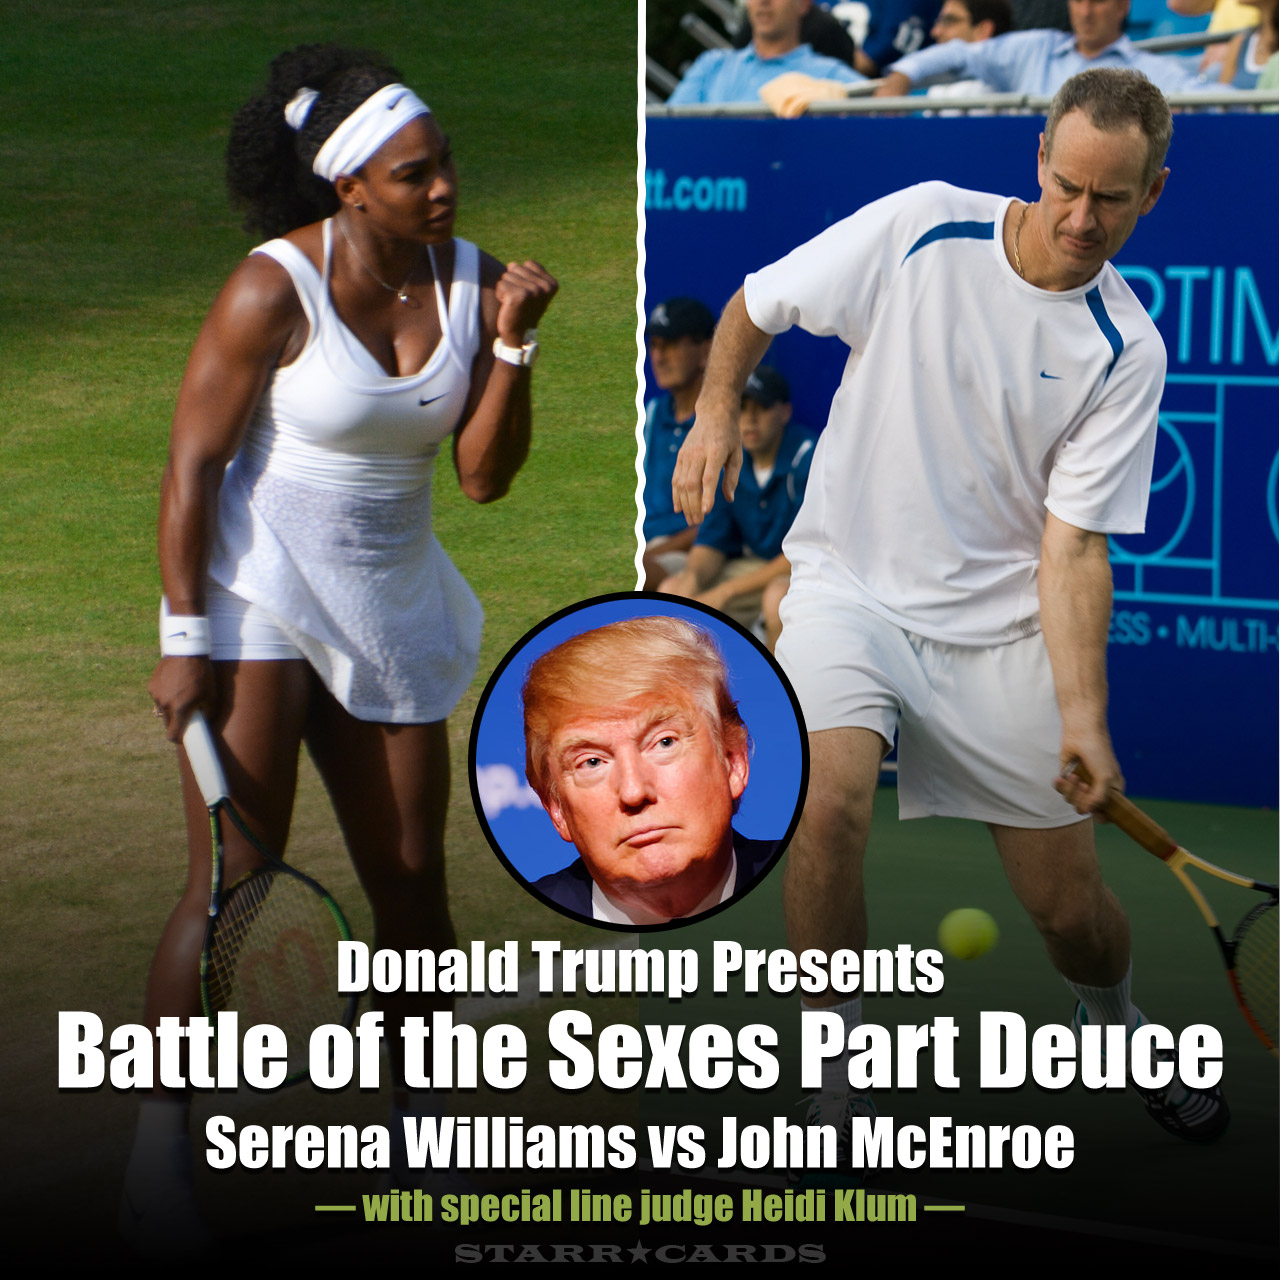 Donald Trump presents Battle of the Sexes Part Deuce: Serena Williams vs John McEnroe